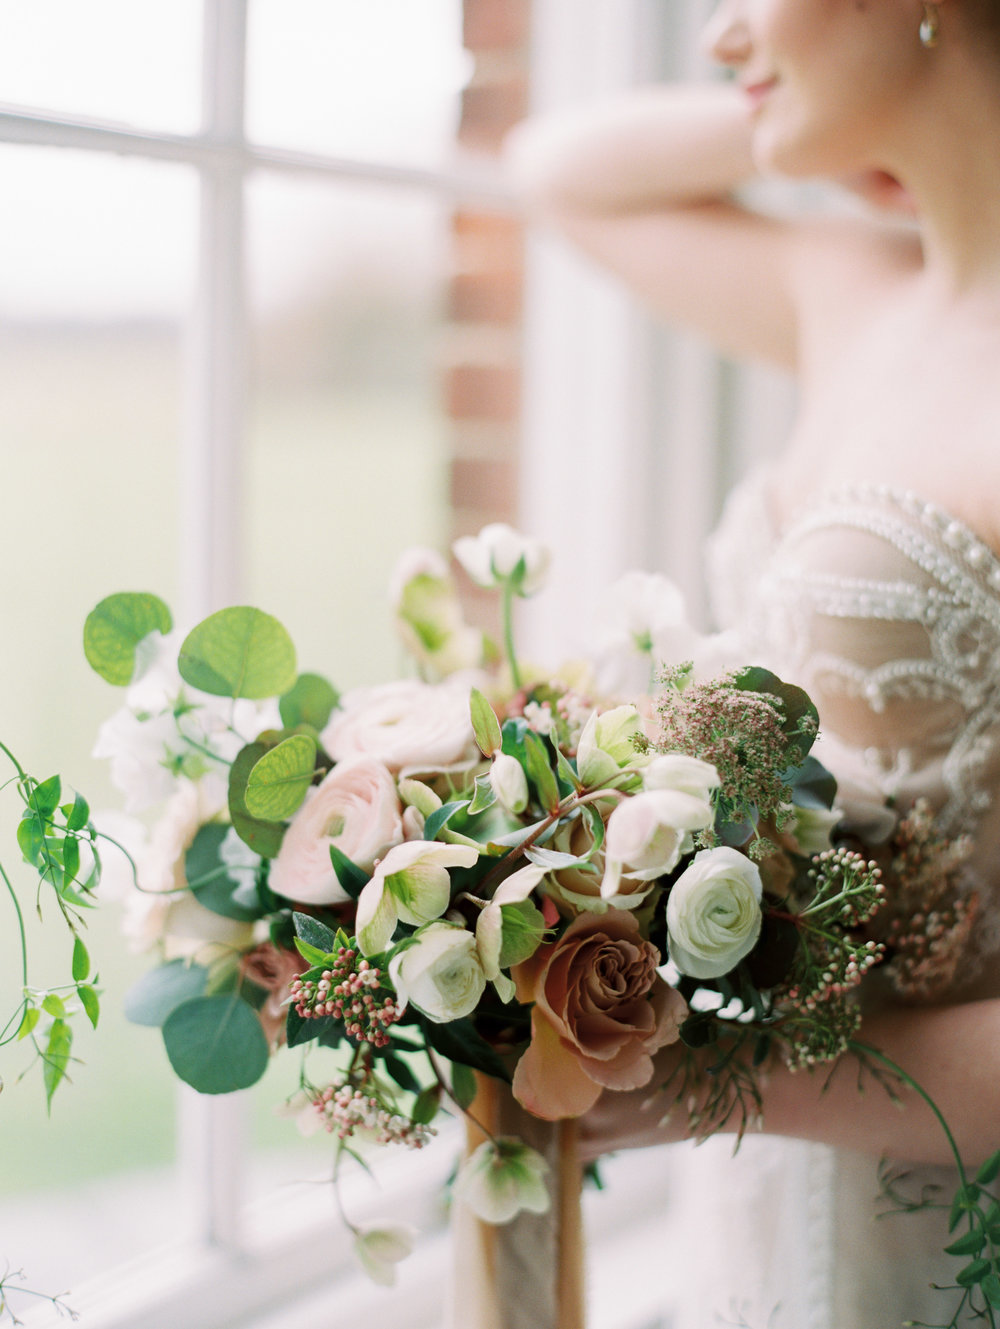 The Timeless Stylist-Elegant and Romantic Wedding Styling-Fine Art Wedding Bouquet.jpg